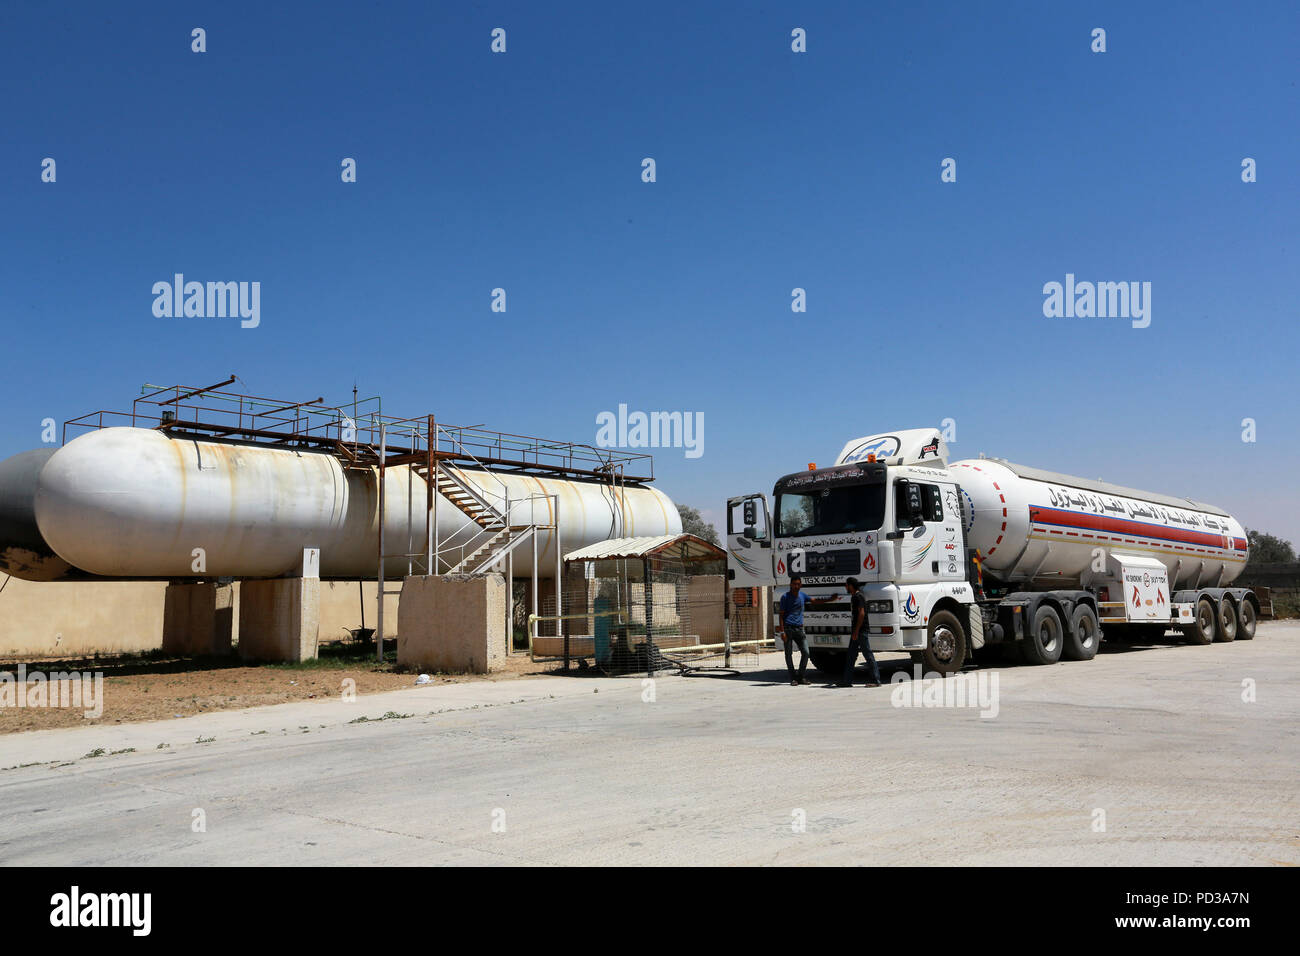 Rafah, Gaza Strip, Palestinian Territory. 6th Aug, 2018. Trucks loaded with  cooking gas imported from Egypt are seen at a gas station in Rafah, ...